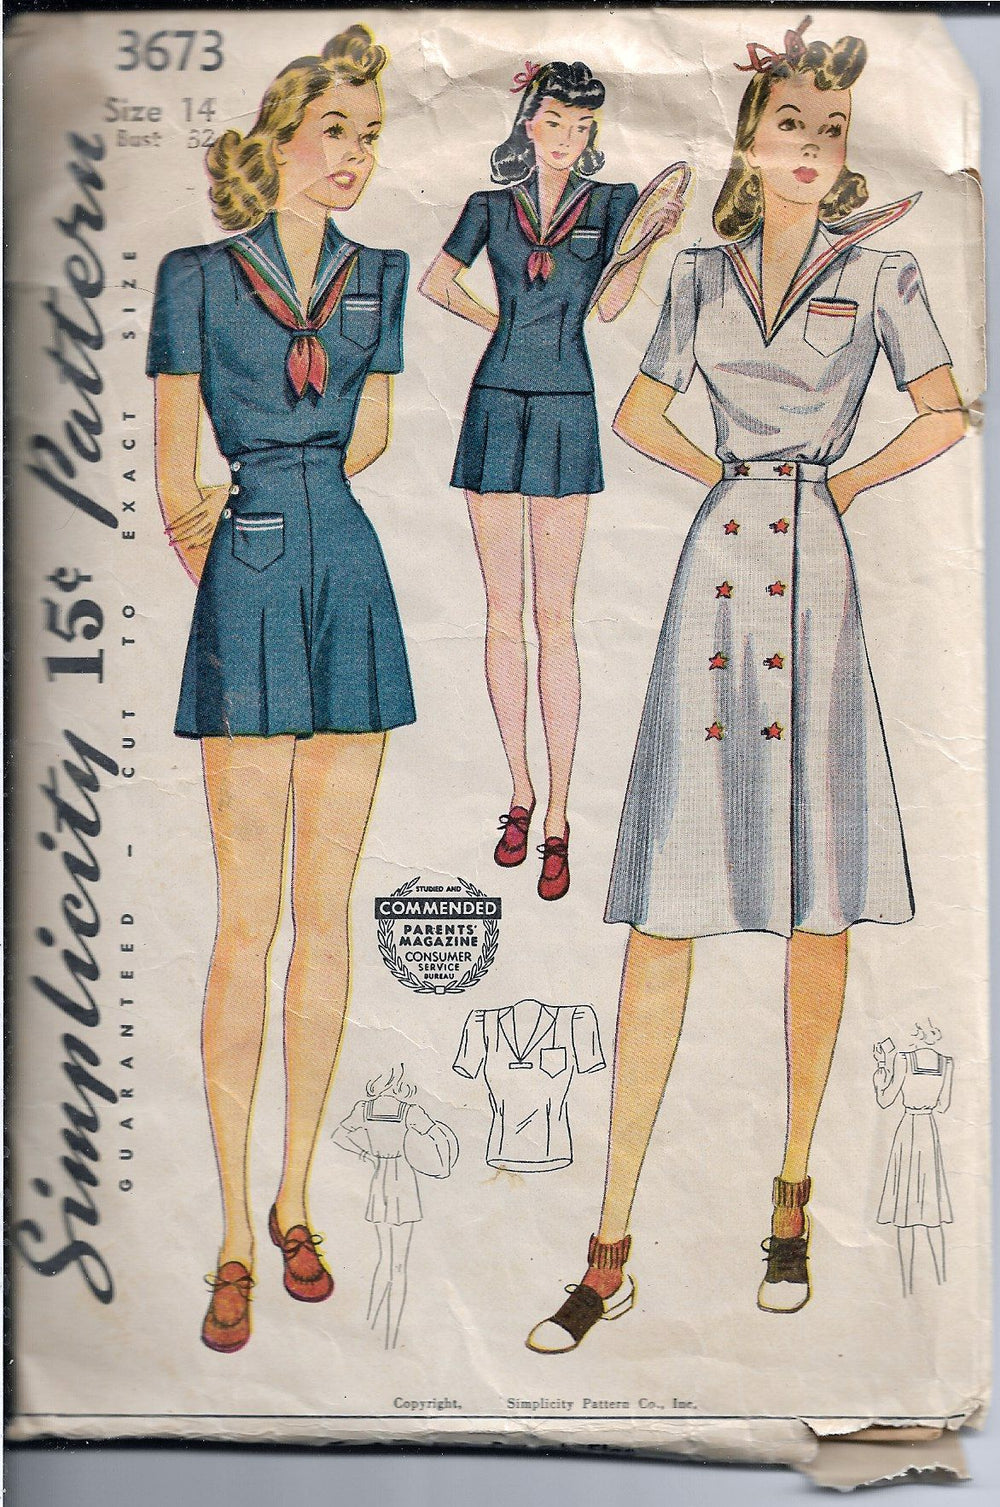 Simplicity 3673 Ladies Playsuit Romper Sailor Dress Vintage Sewing Pattern 1940s - VintageStitching - Vintage Sewing Patterns